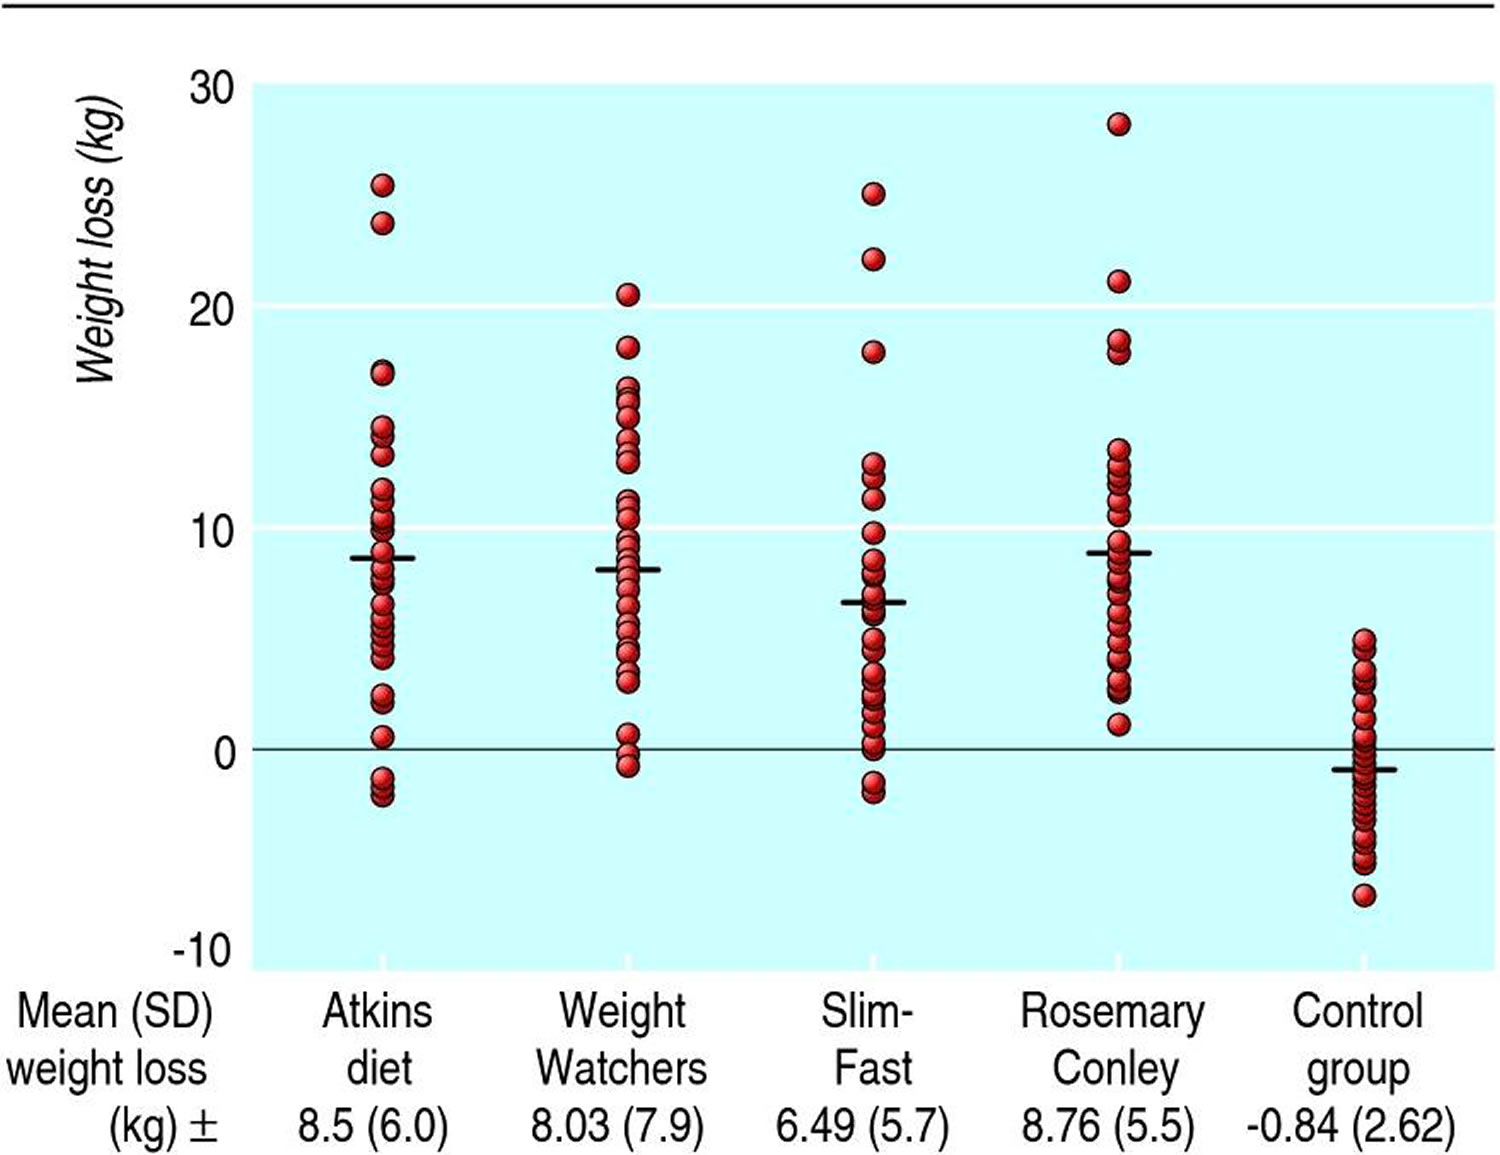 Absolute weight loss of participants who completed the BBC diet trials